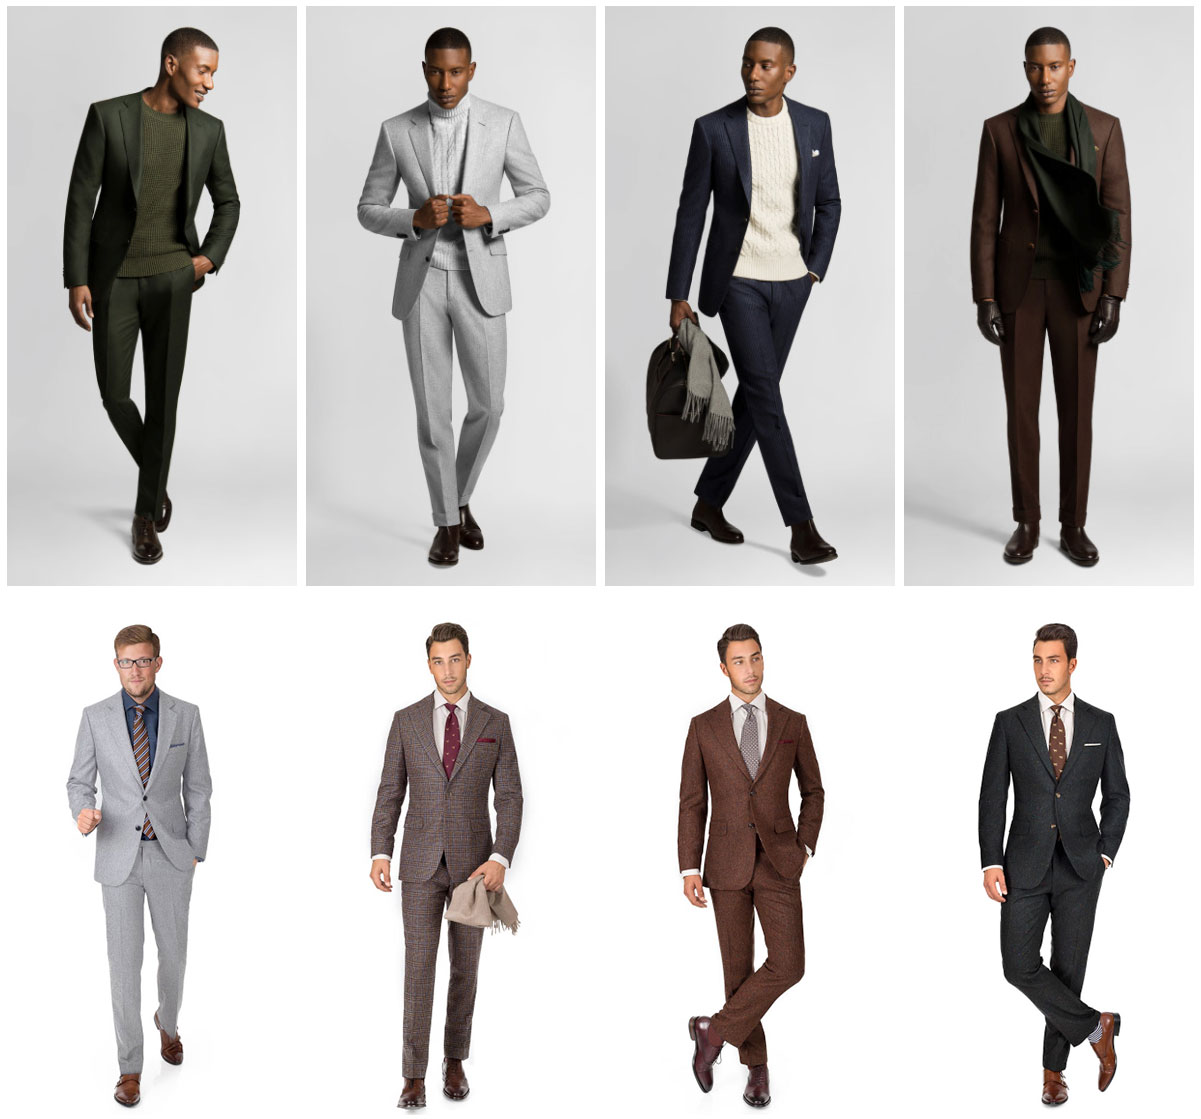 Men S Winter Fashion 2020 Essentials Not Trends You Need To Know Effortless Gent